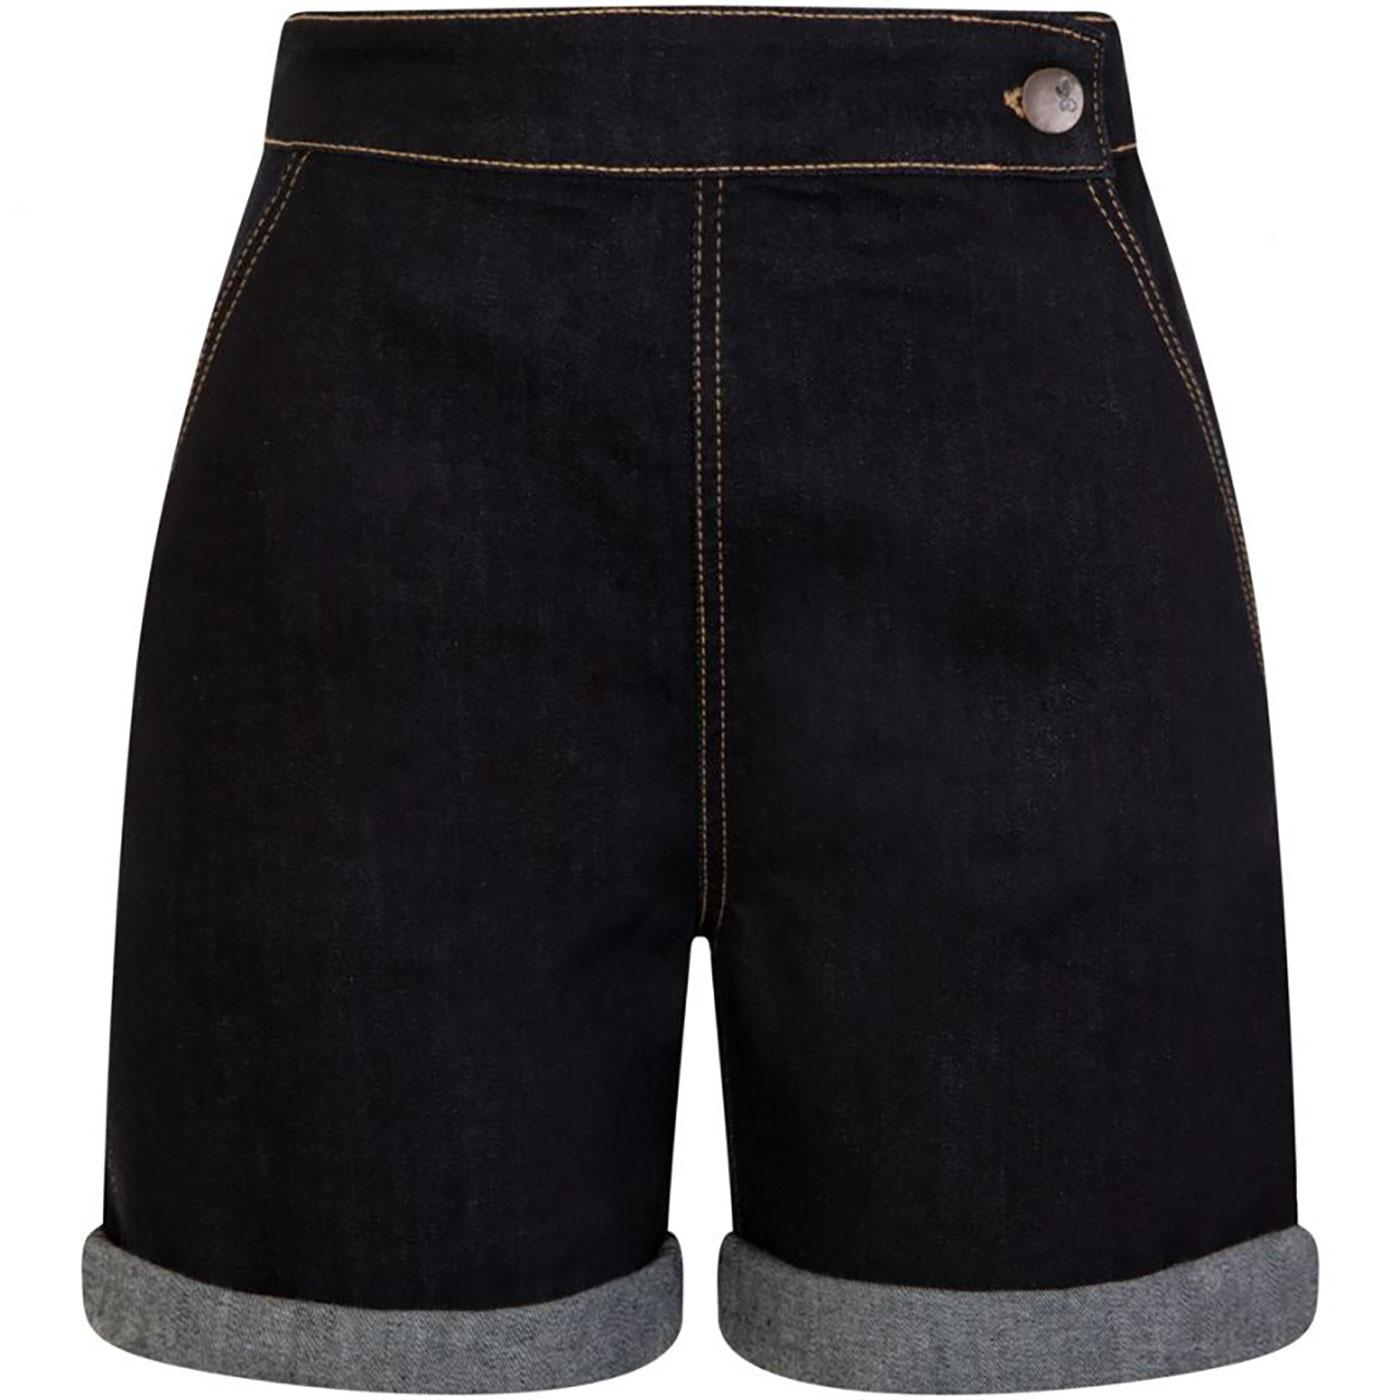 Yaz HELL BUNNY 1950s Vintage High Rise Shorts NAVY